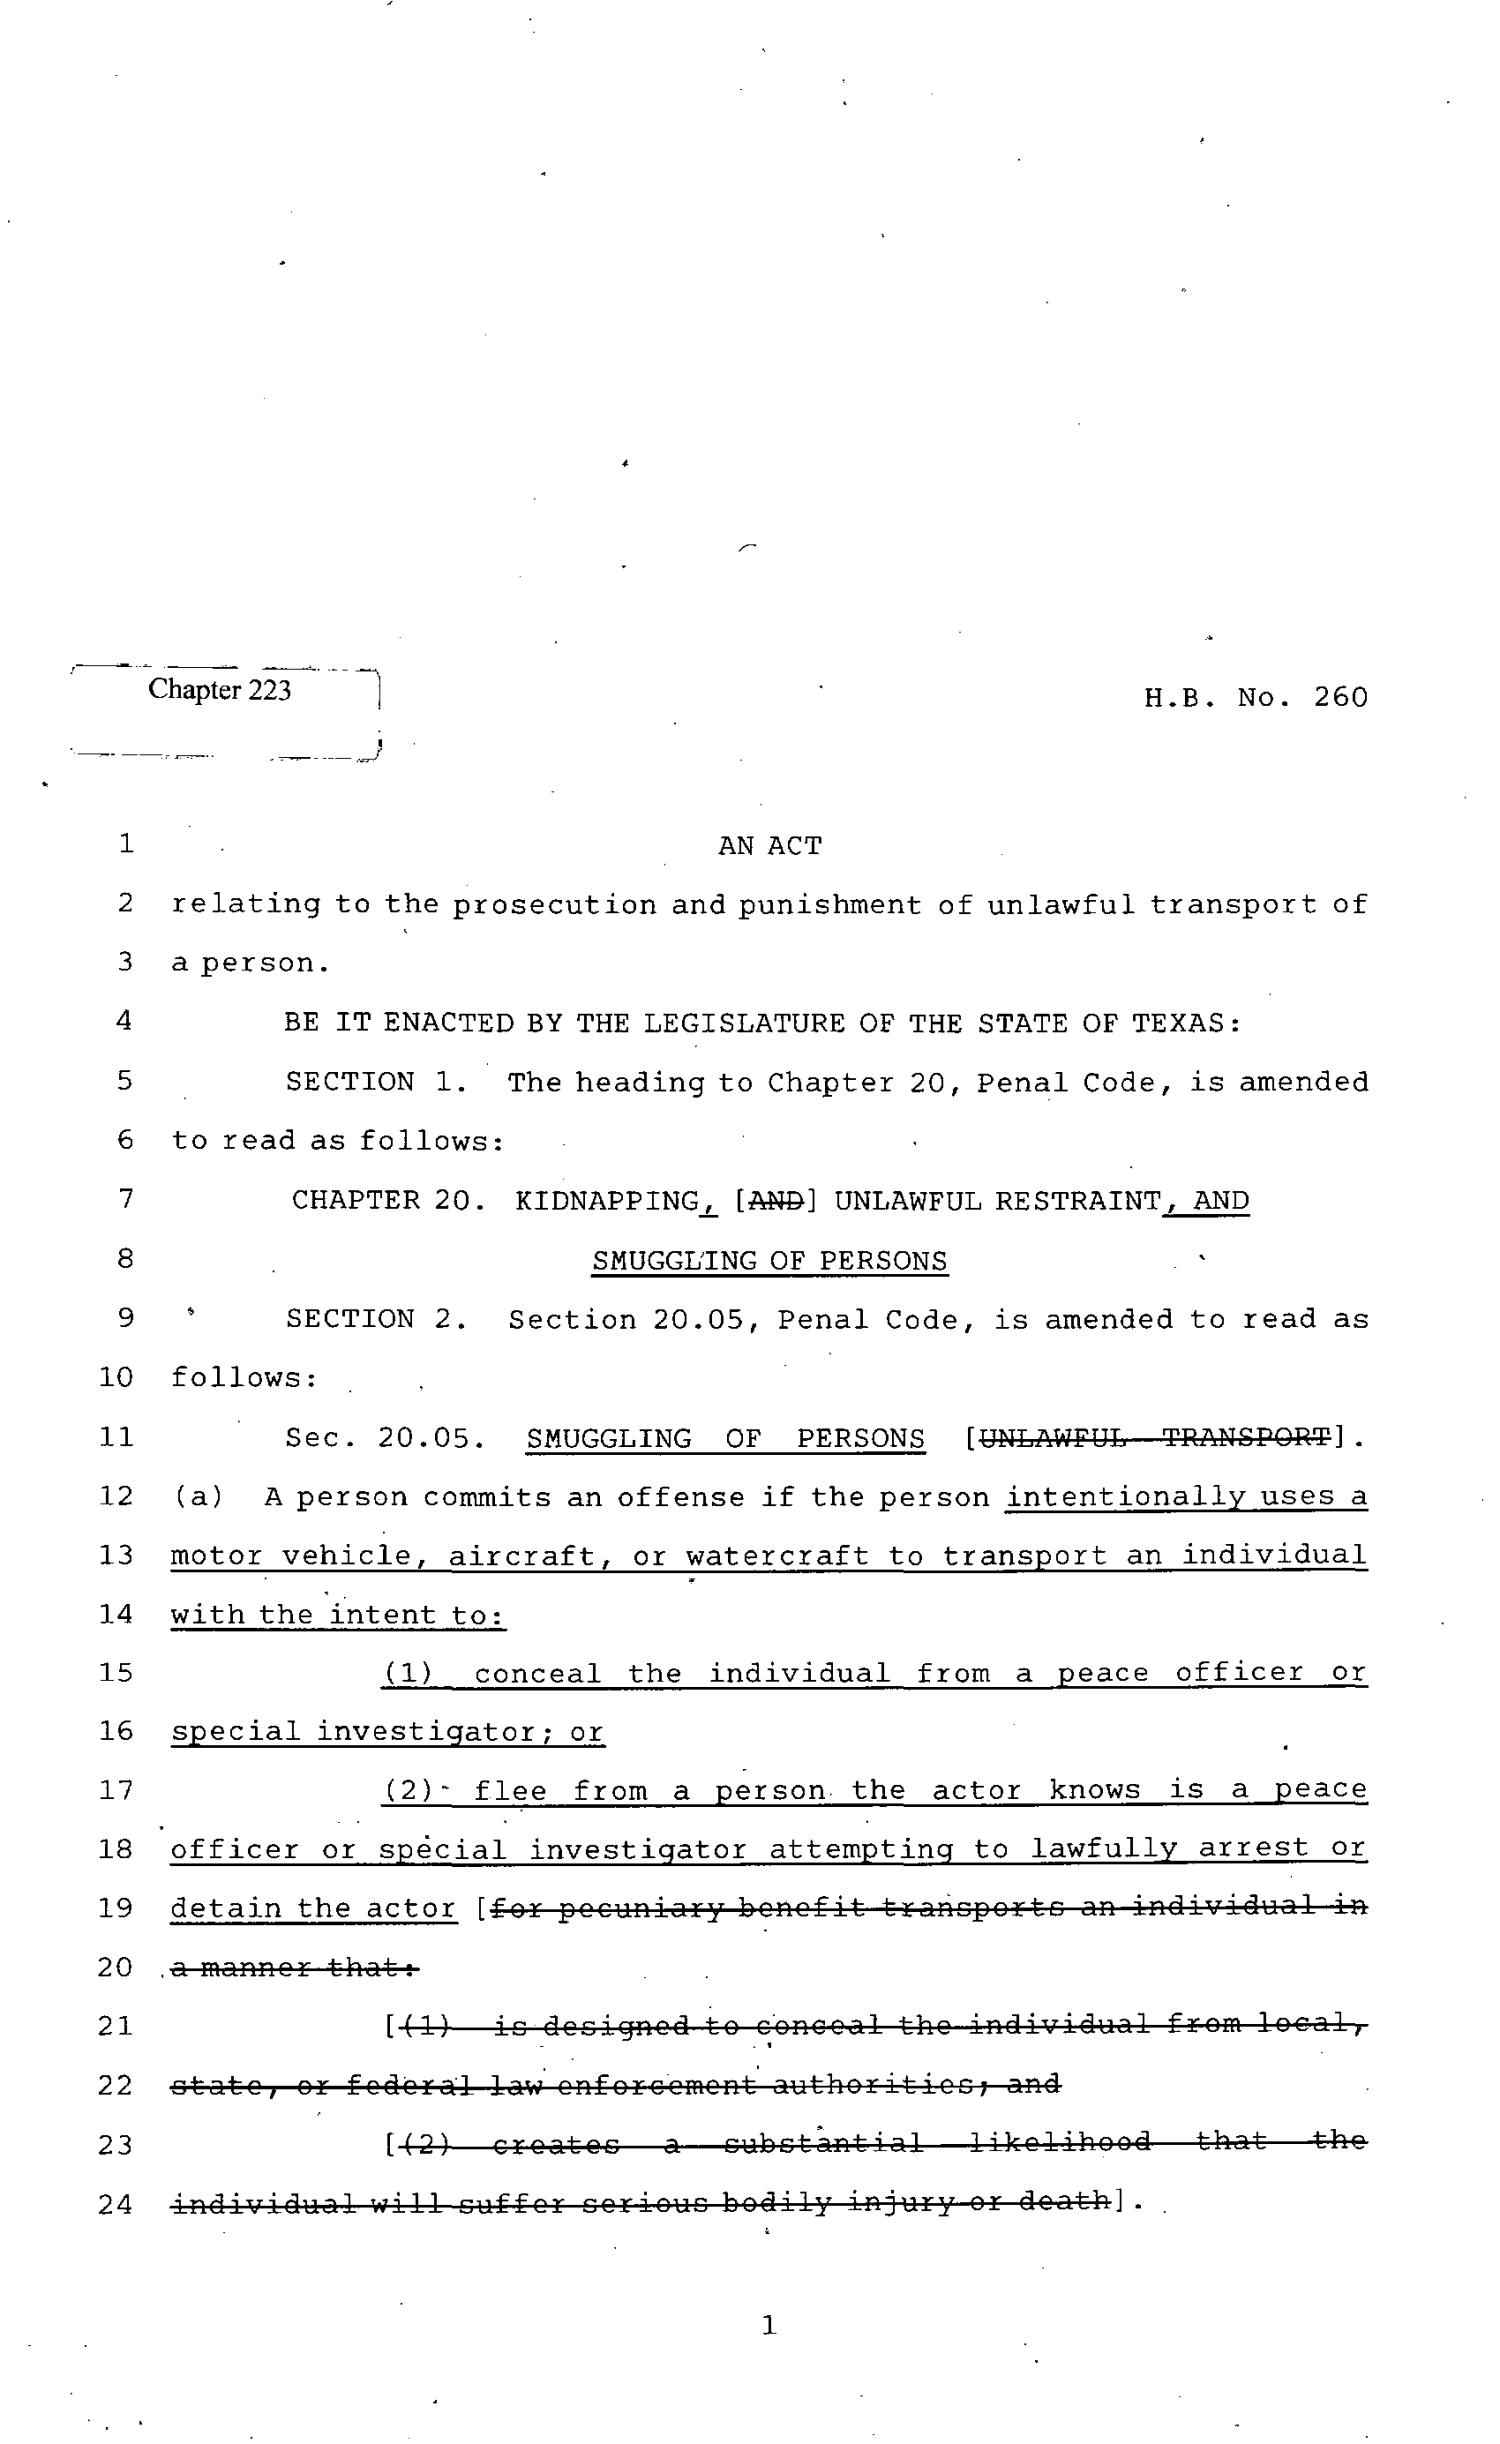 82nd Texas Legislature, Regular Session, House Bill 260, Chapter 223                                                                                                      [Sequence #]: 1 of 8